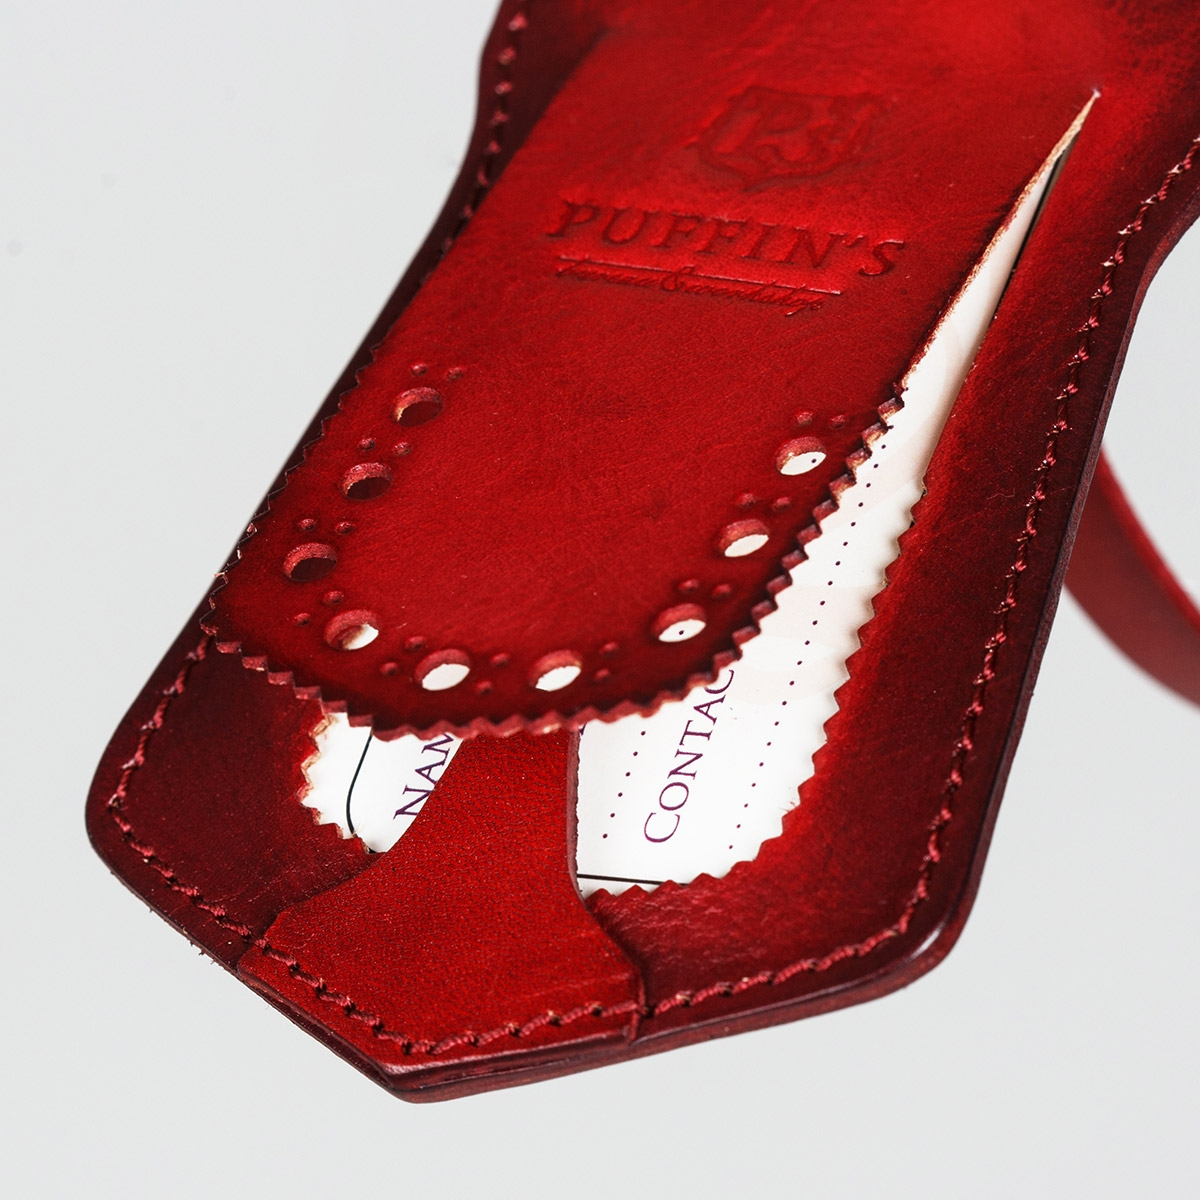 Luggage tag TAVARUA personalized with patina red currant